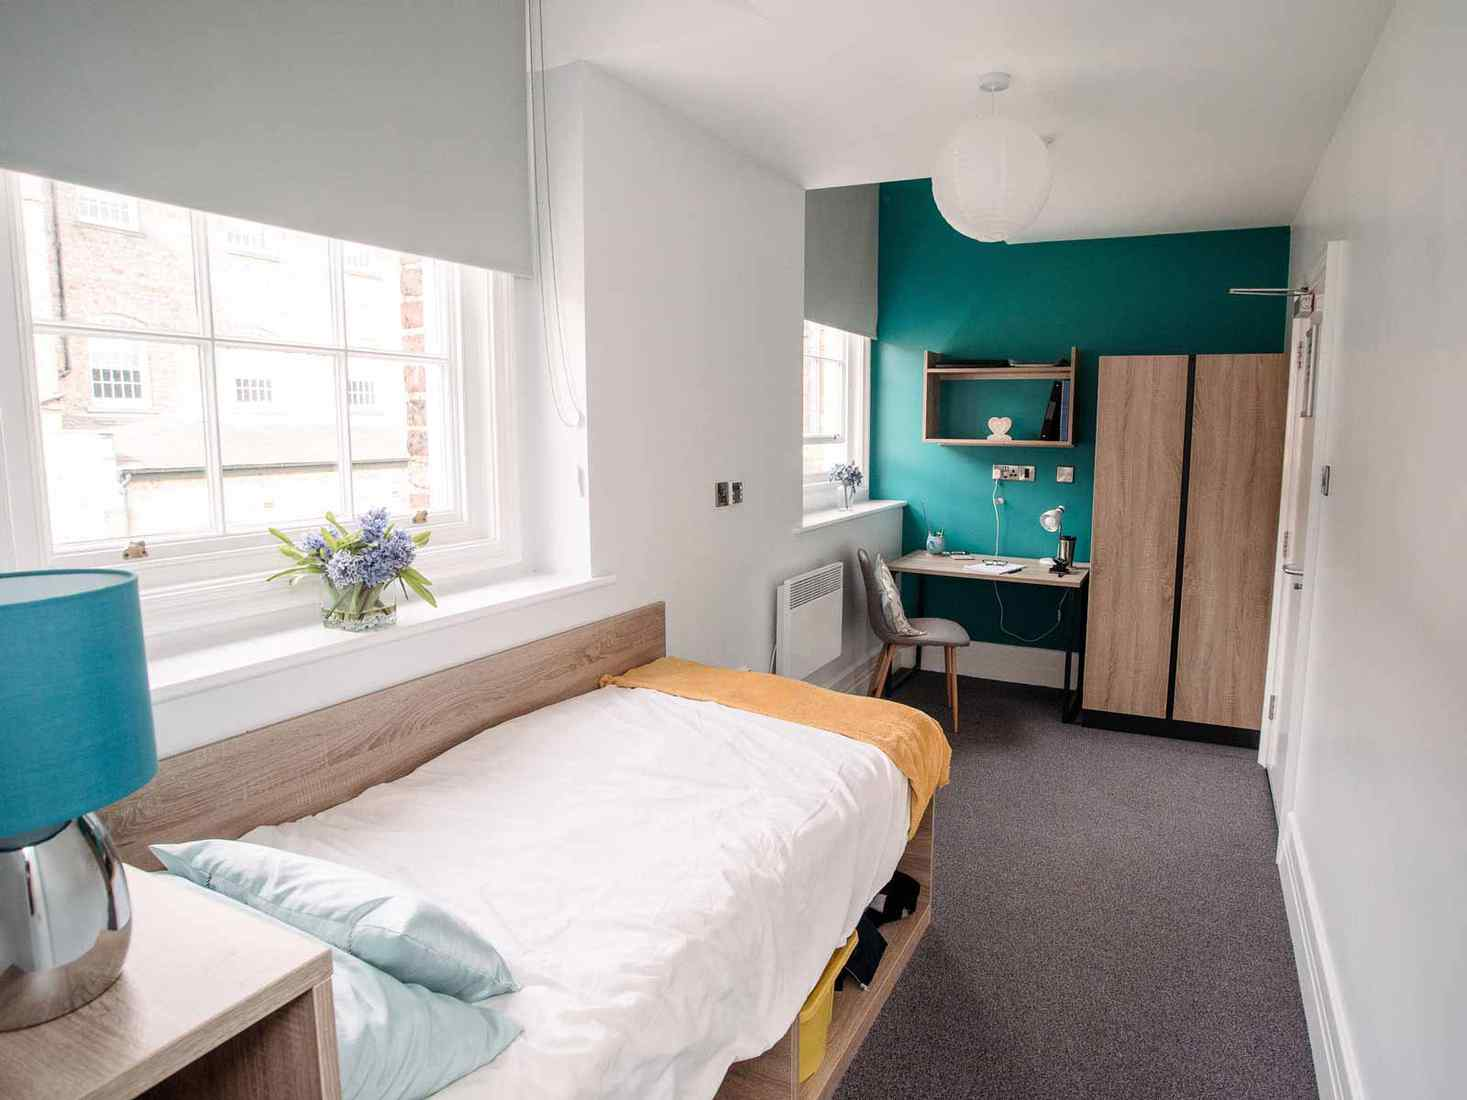 Student room with single bed, desk and wardrobe